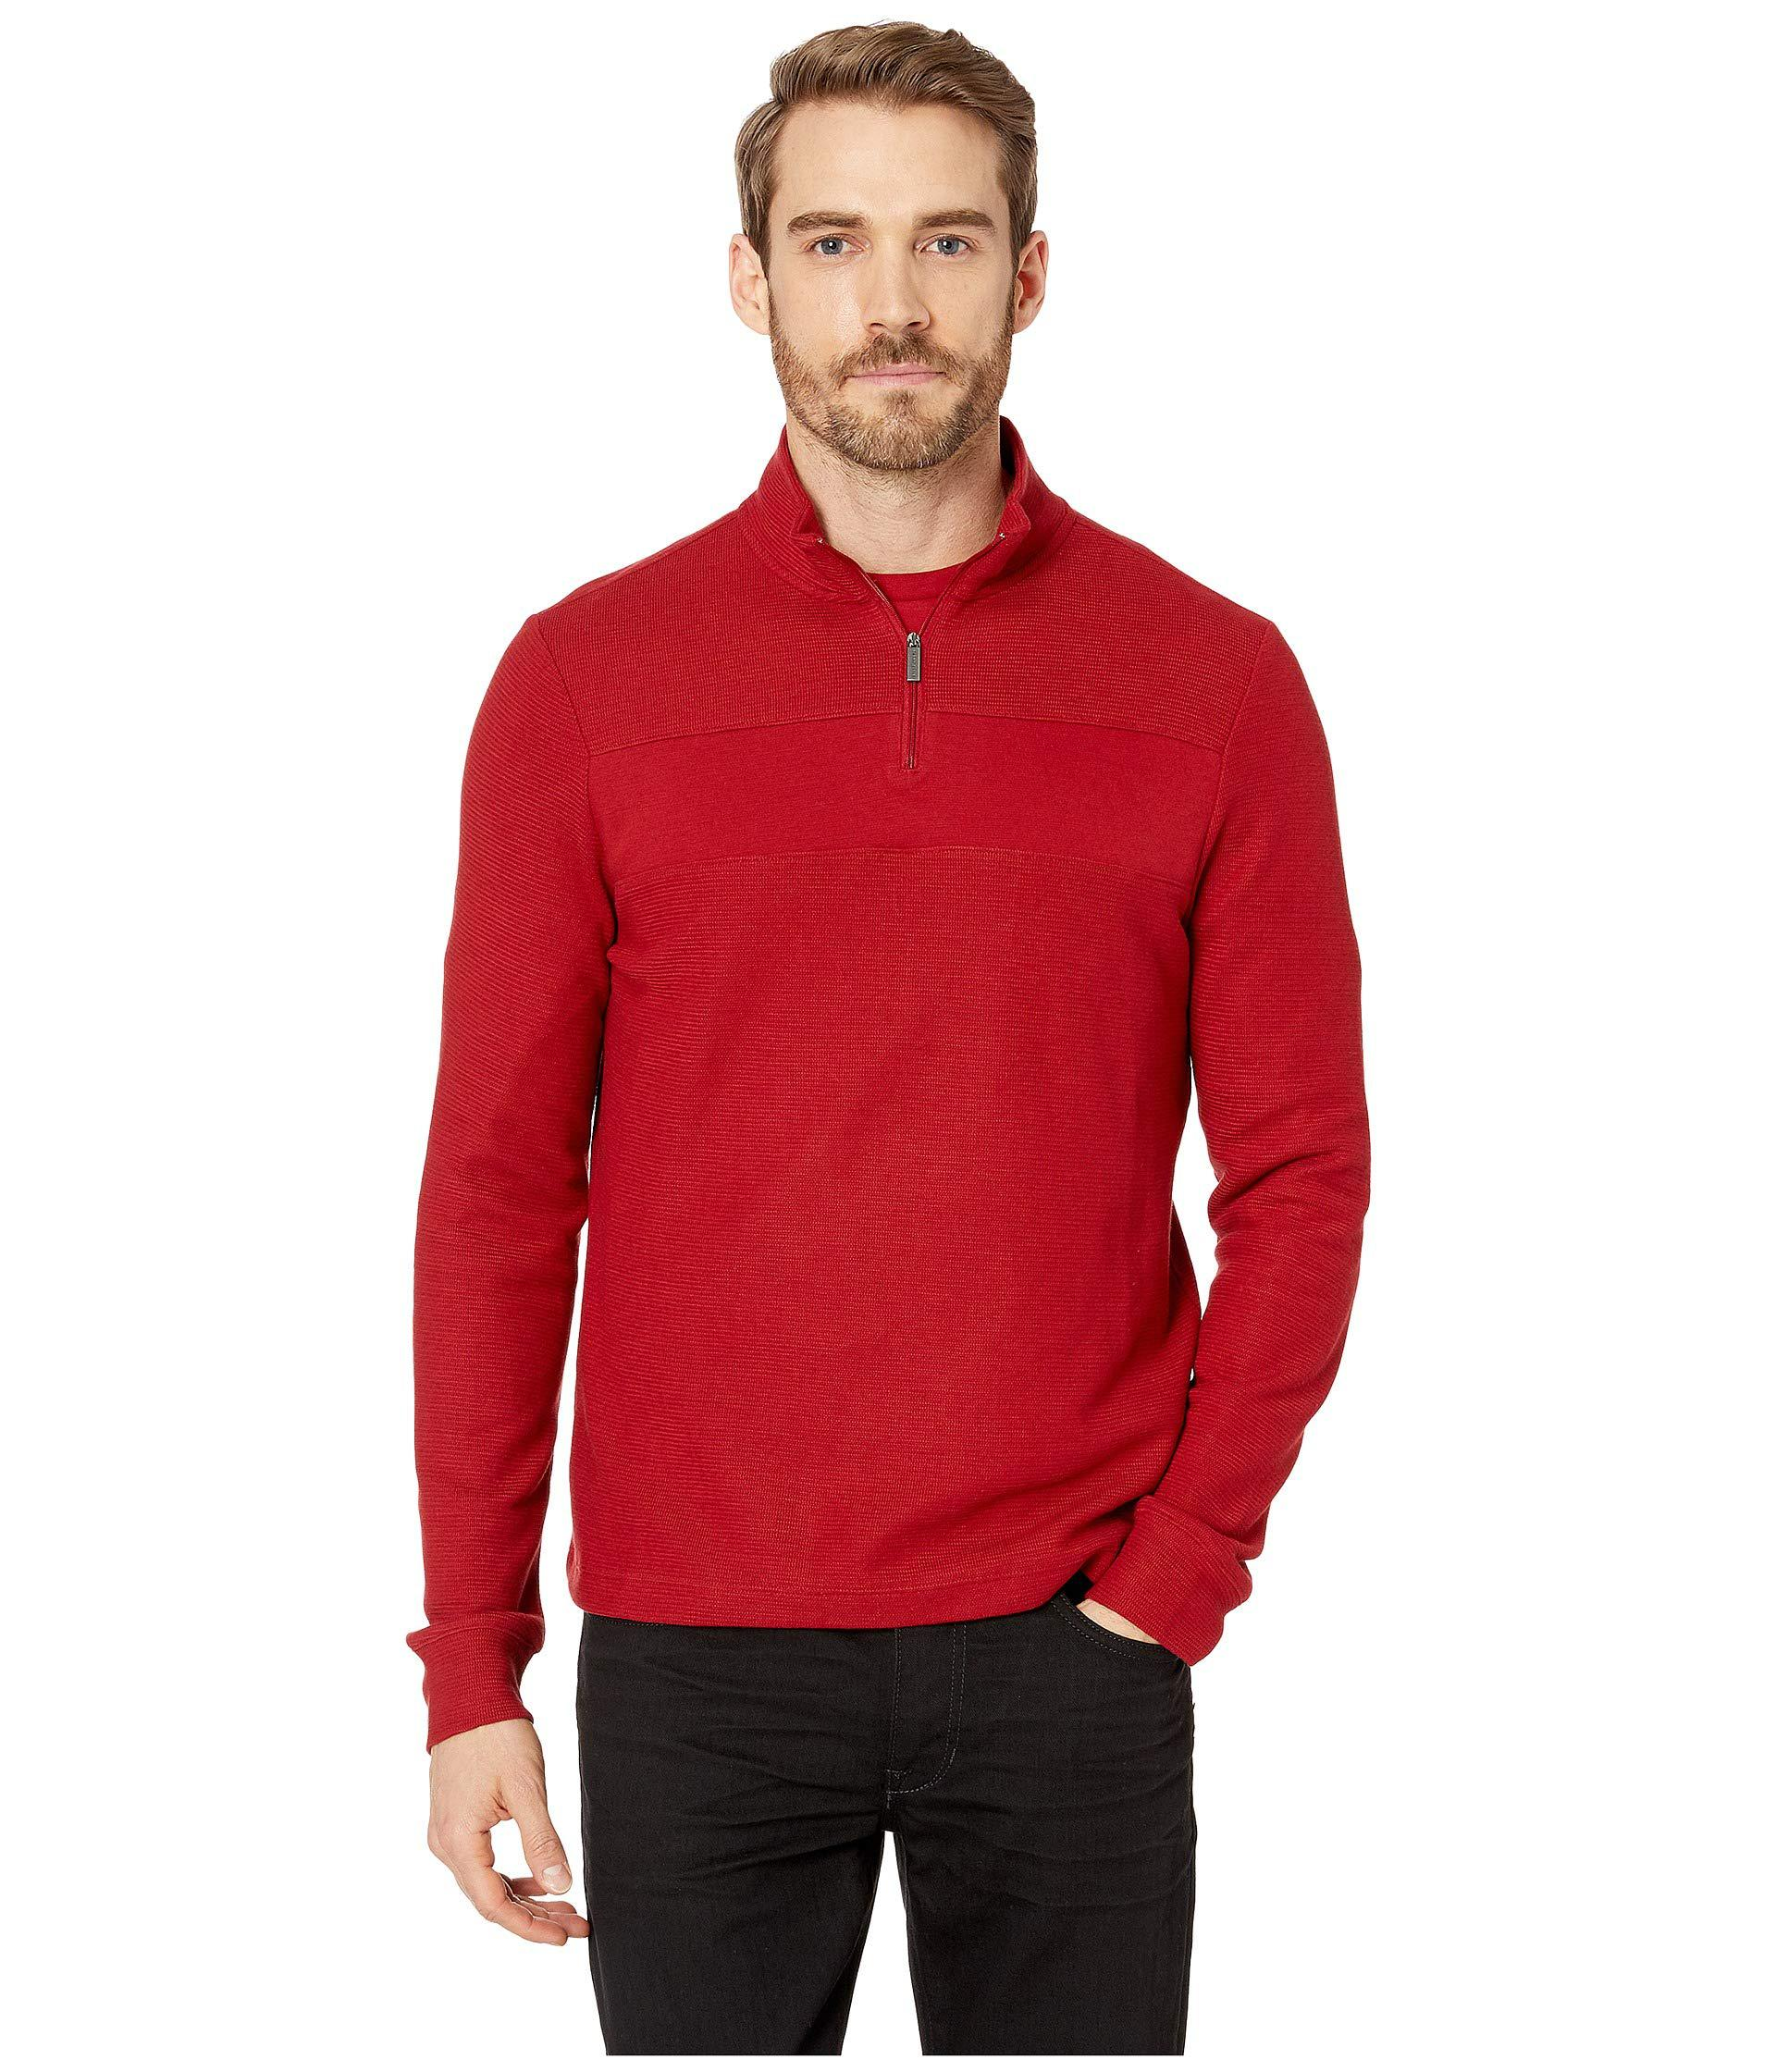 Lyst - Perry Ellis Regular Fit 1 4 Zip Jacquard Sweater in Red for ... 6b0a60be1